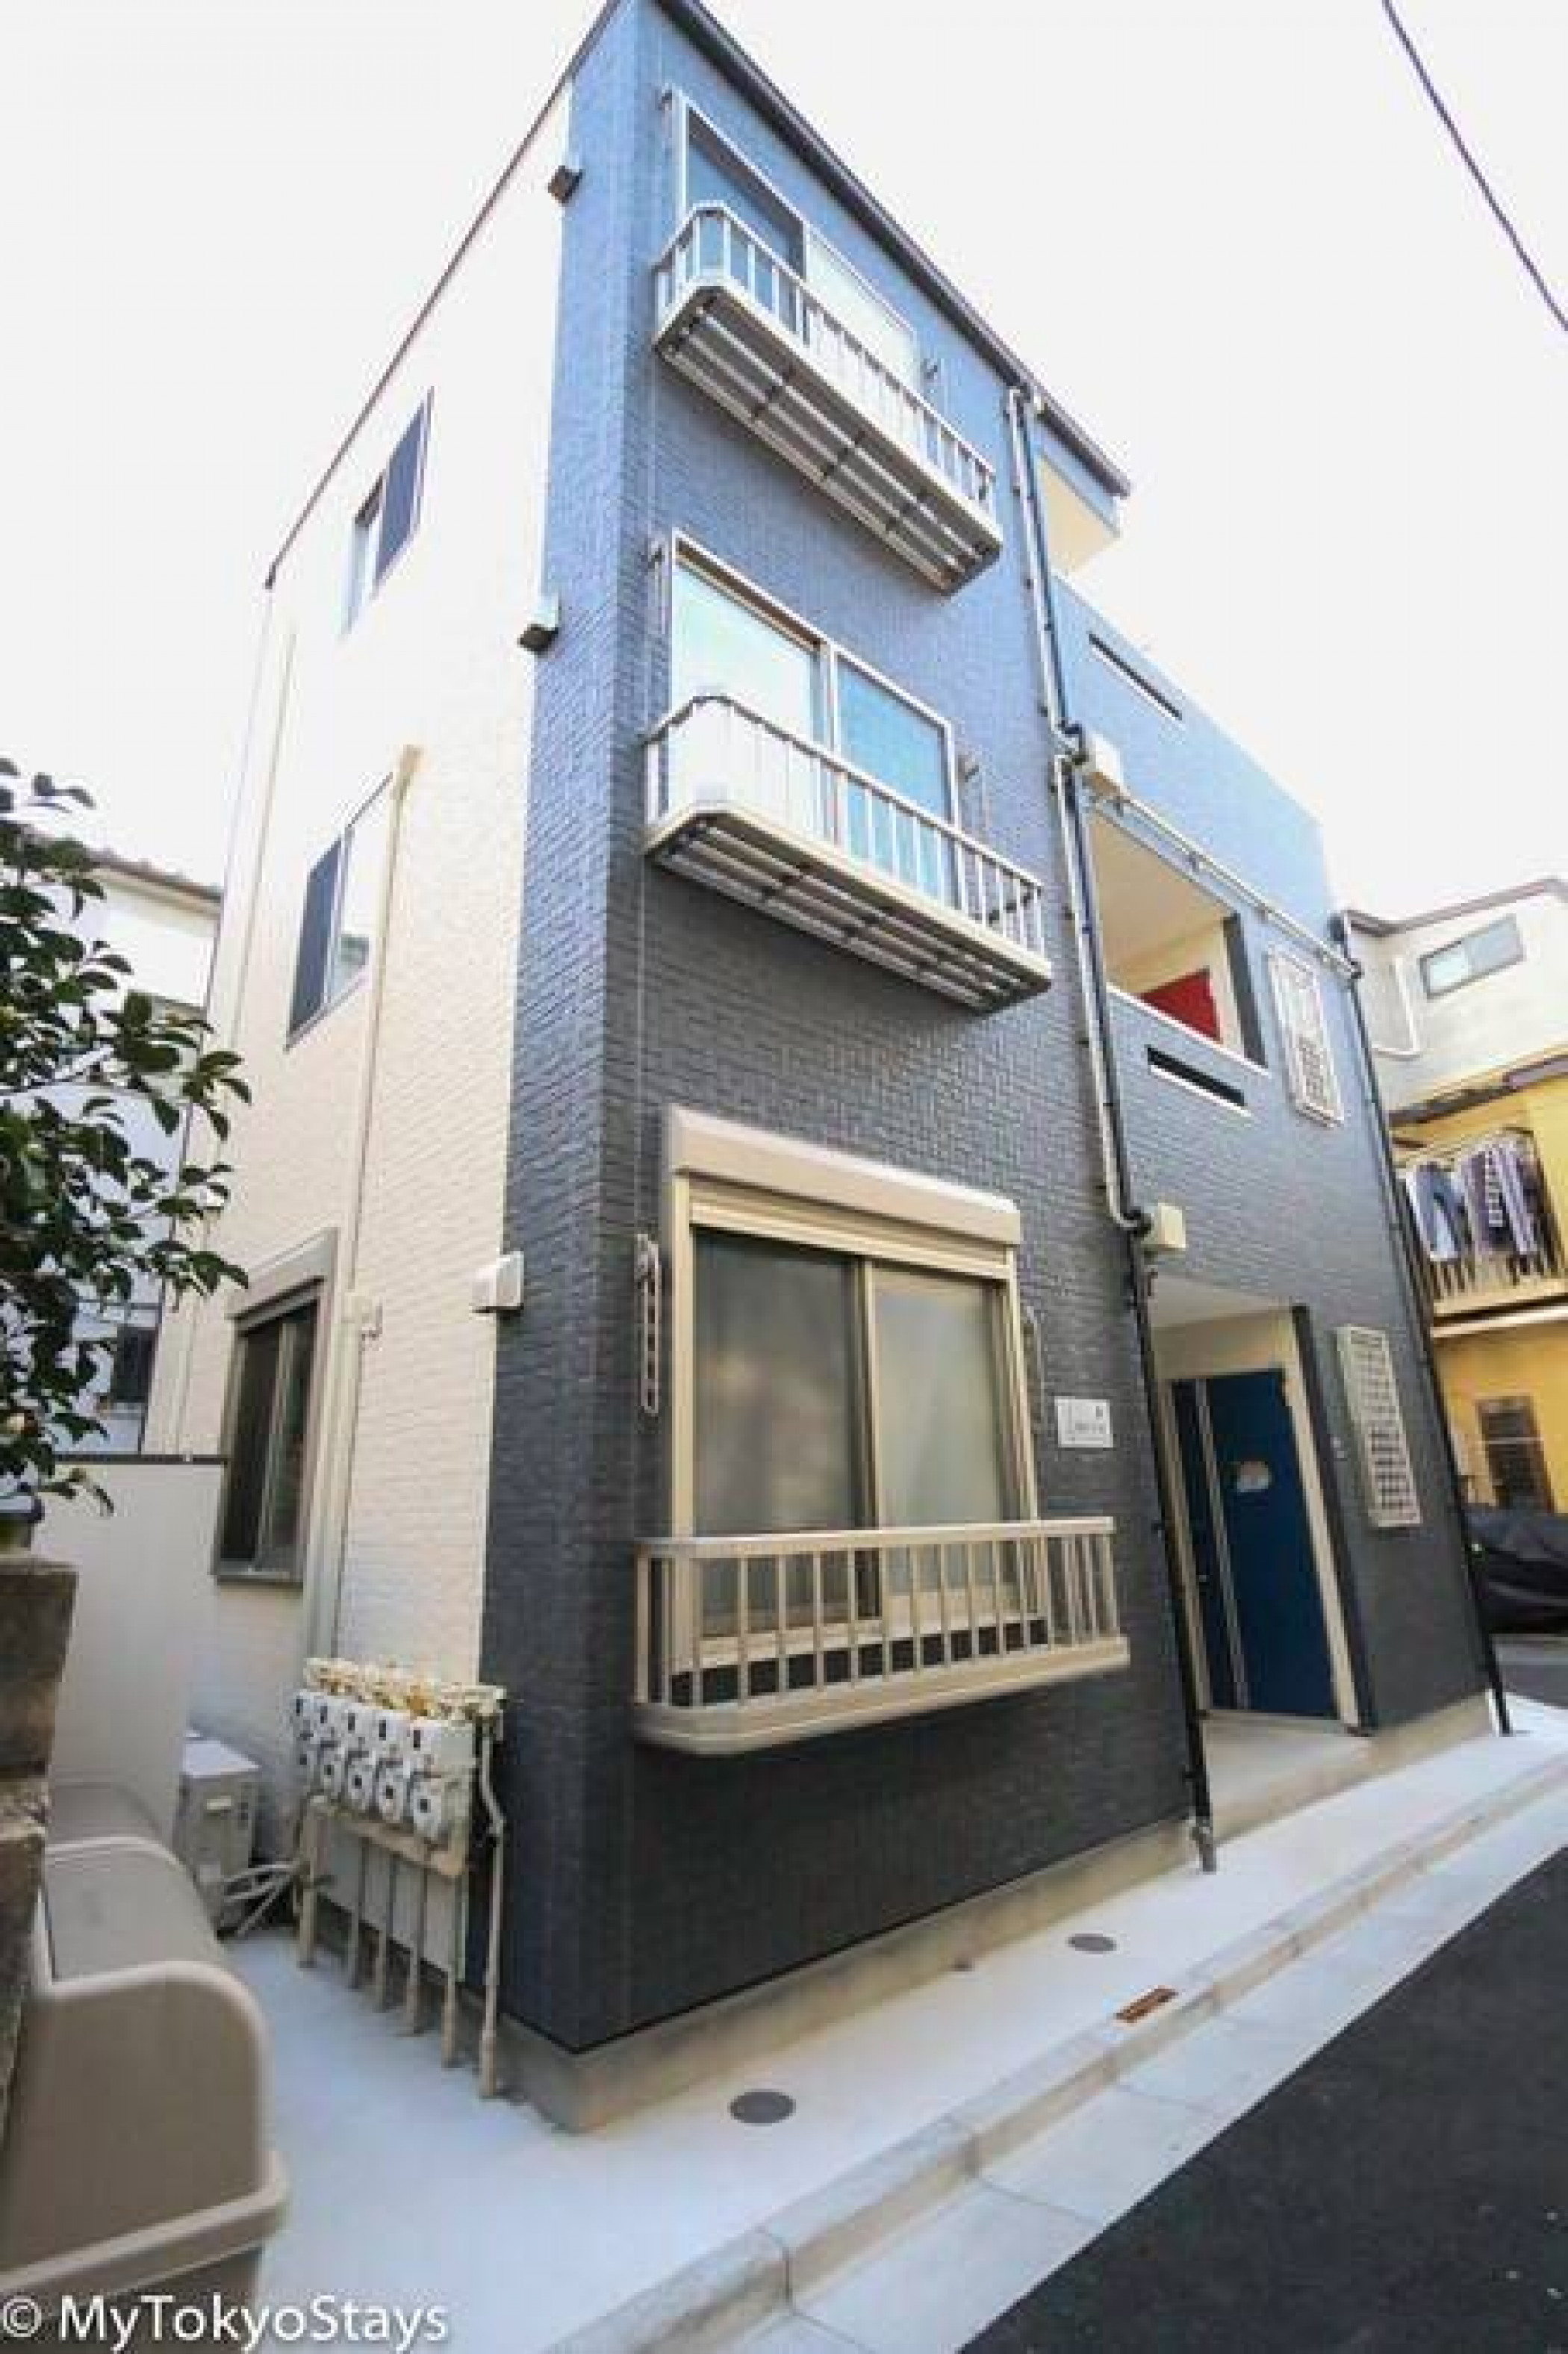 Bell Flat Unit #102 · Skytree & Asakusa Easy Access Bell Flat Inn #2